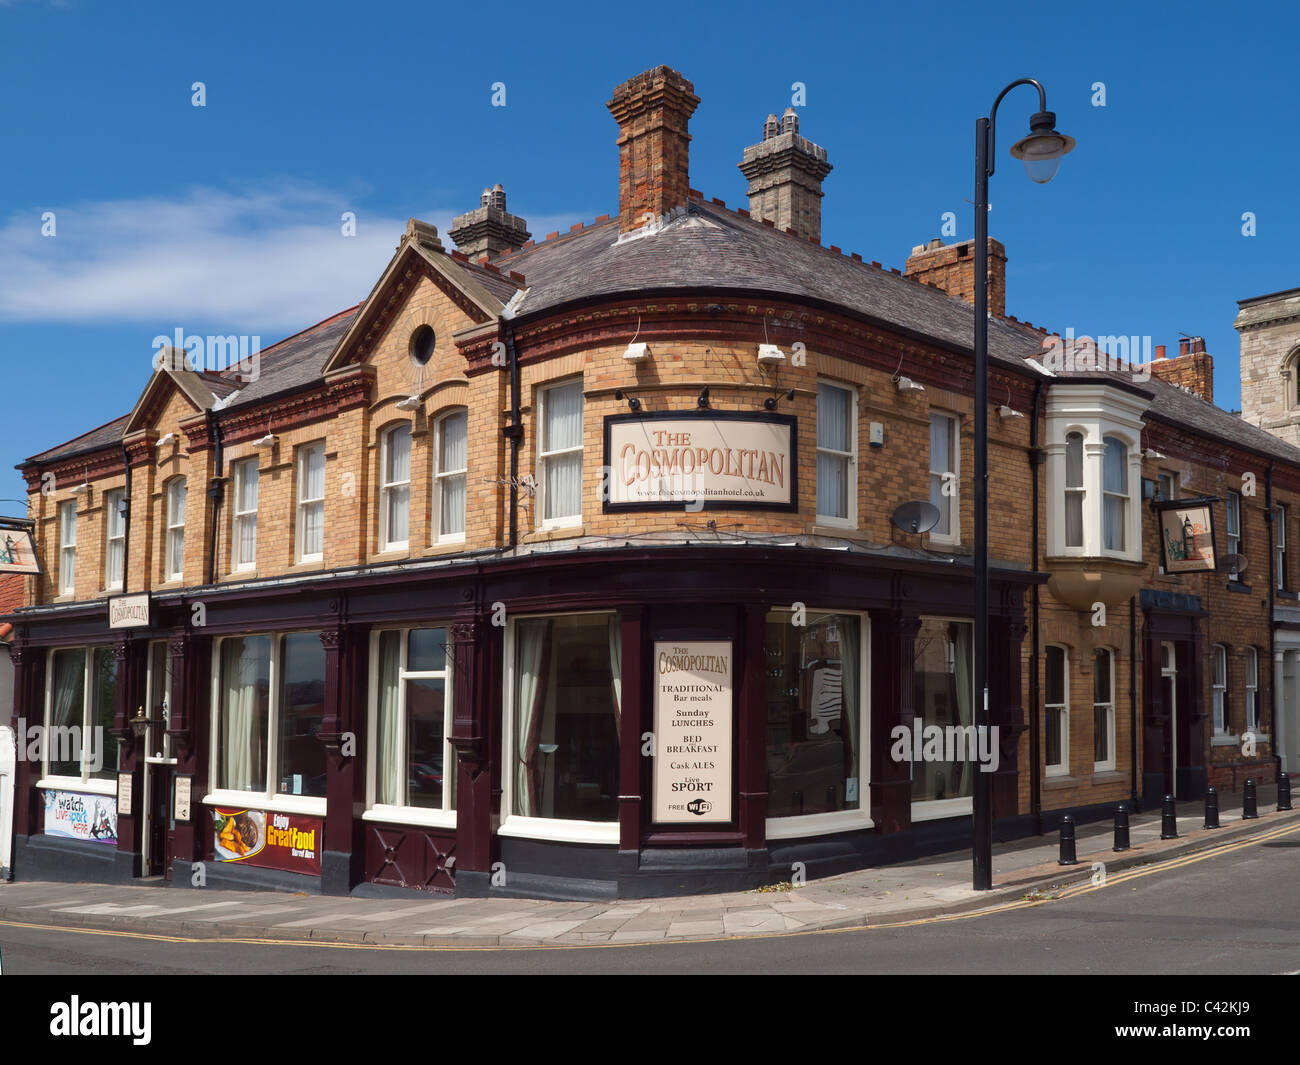 The Cosmopolitan a supposedly haunted Hotel on Heugh Headland Hartlepool Co. Durham - Stock Image